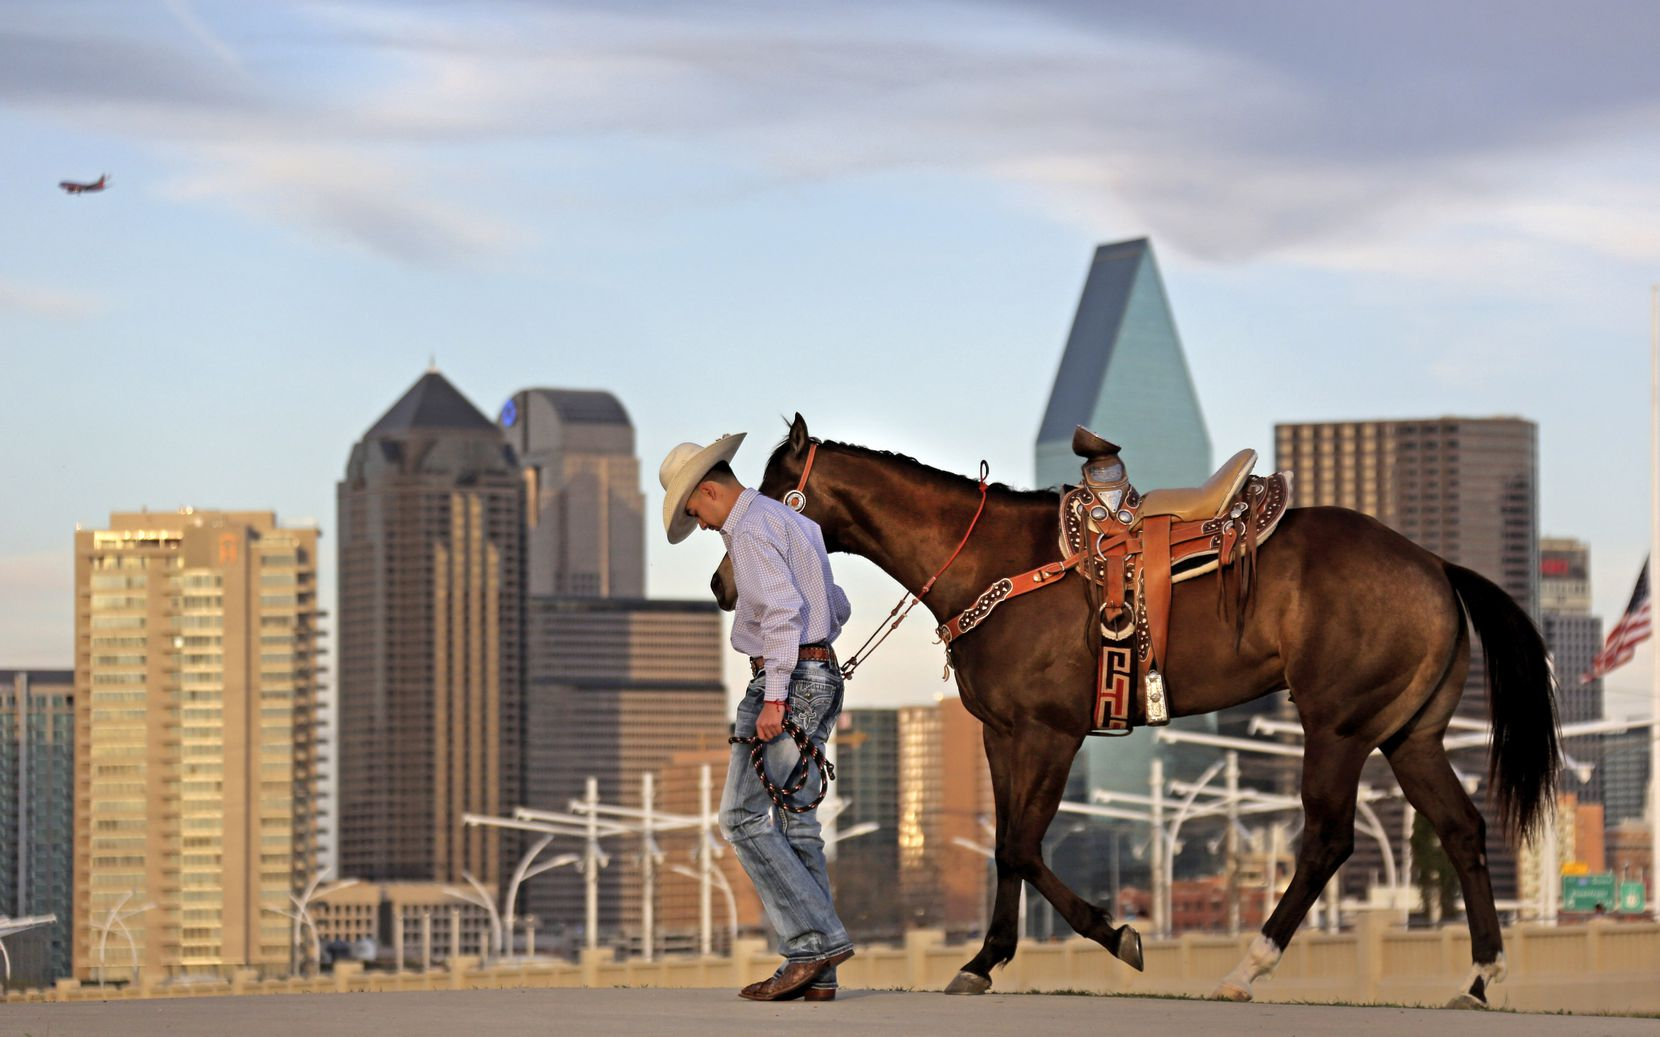 Andrew Salas,who was having his senior portraits taken, walks with his horse on the Trinity River levee in West Dallas, with the downtown Dallas skyline in the background, photographed on Friday, March 16, 2018.